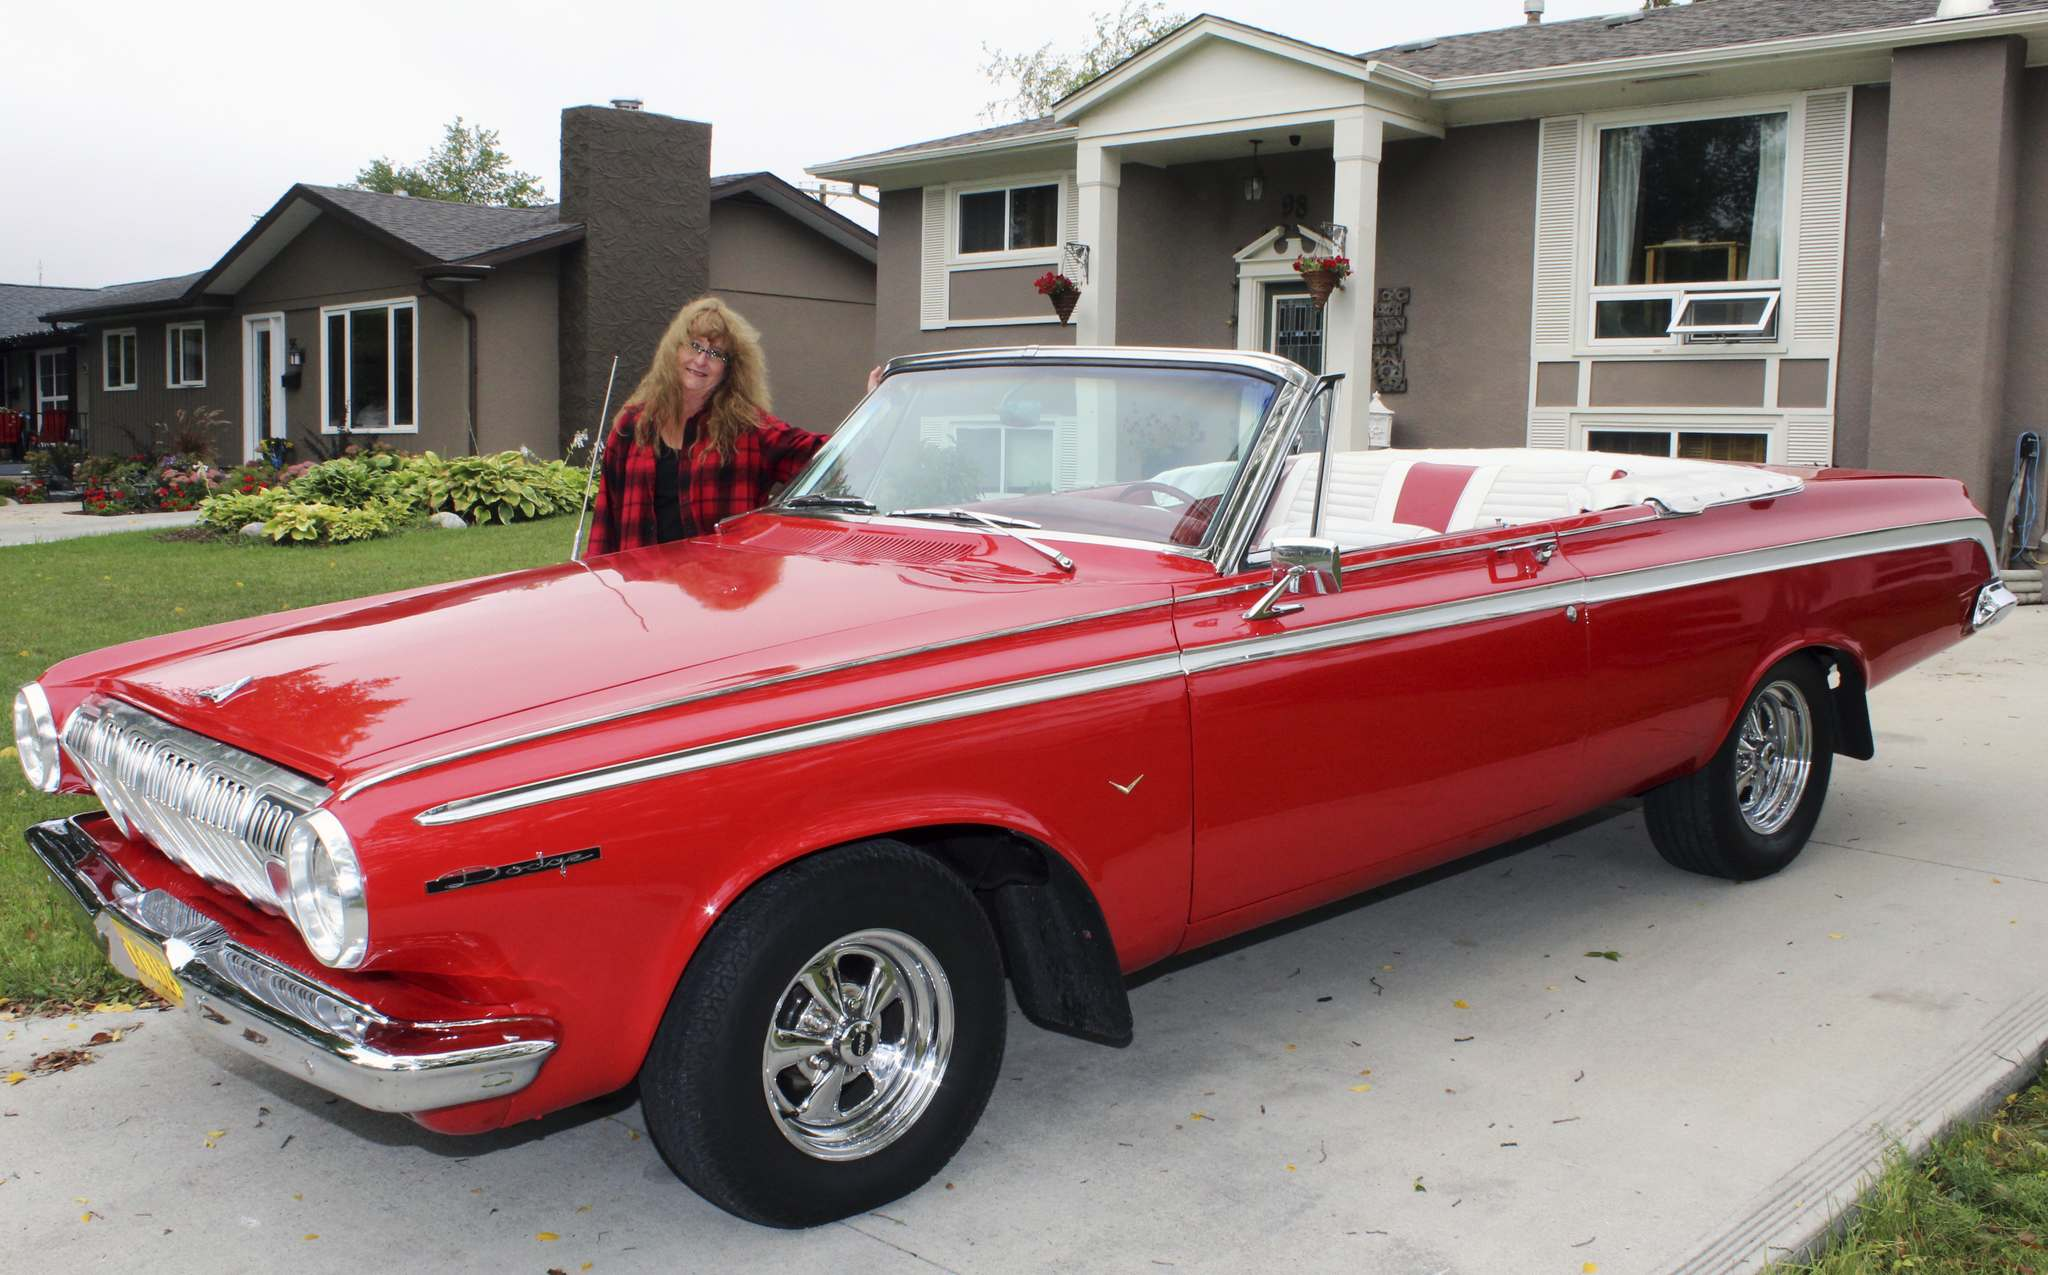 Larry D'Argis / Winnipeg Free PressShelley Daniels shows off her 1963 Dodge 440 convertible. She purchased the rare specimen from another classic car enthusiast in the city.